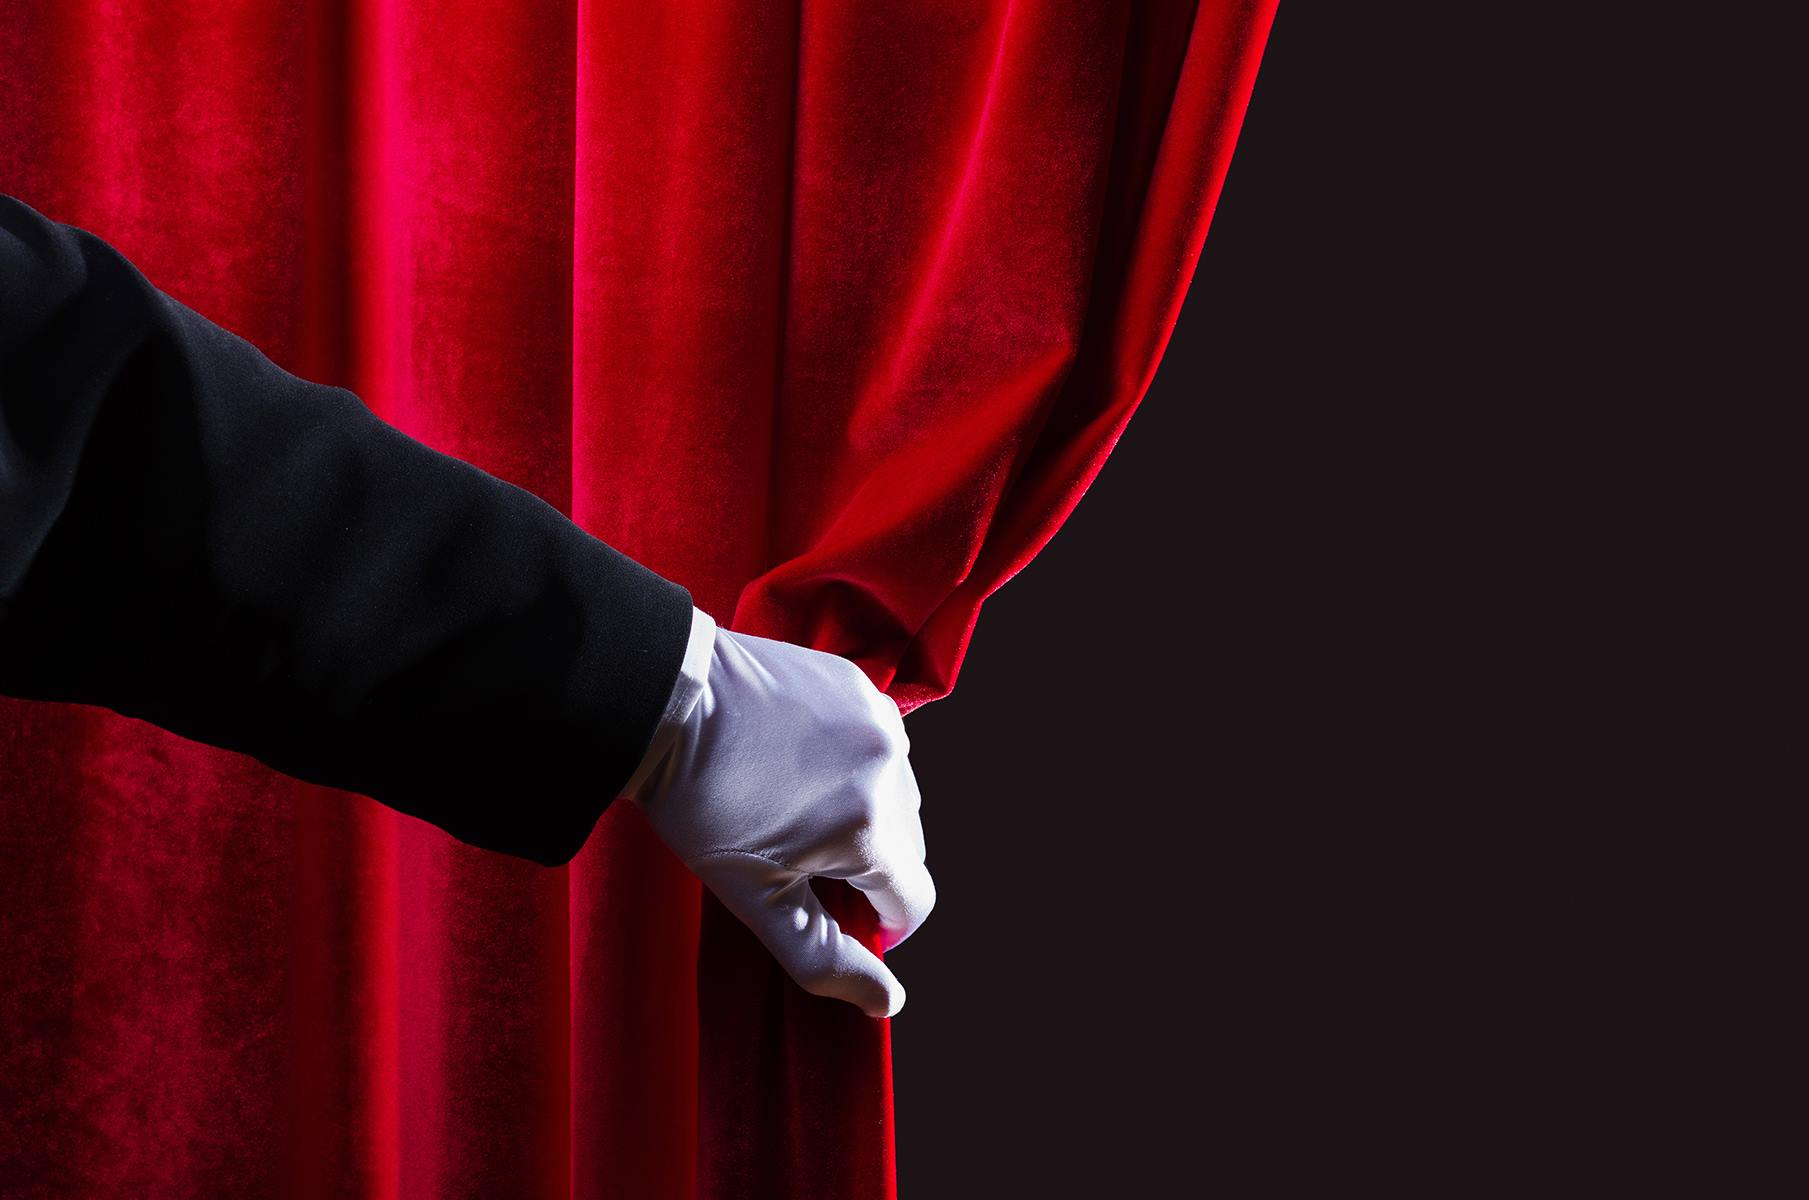 Boca Ratons Political Influencers The Men Behind the Curtain